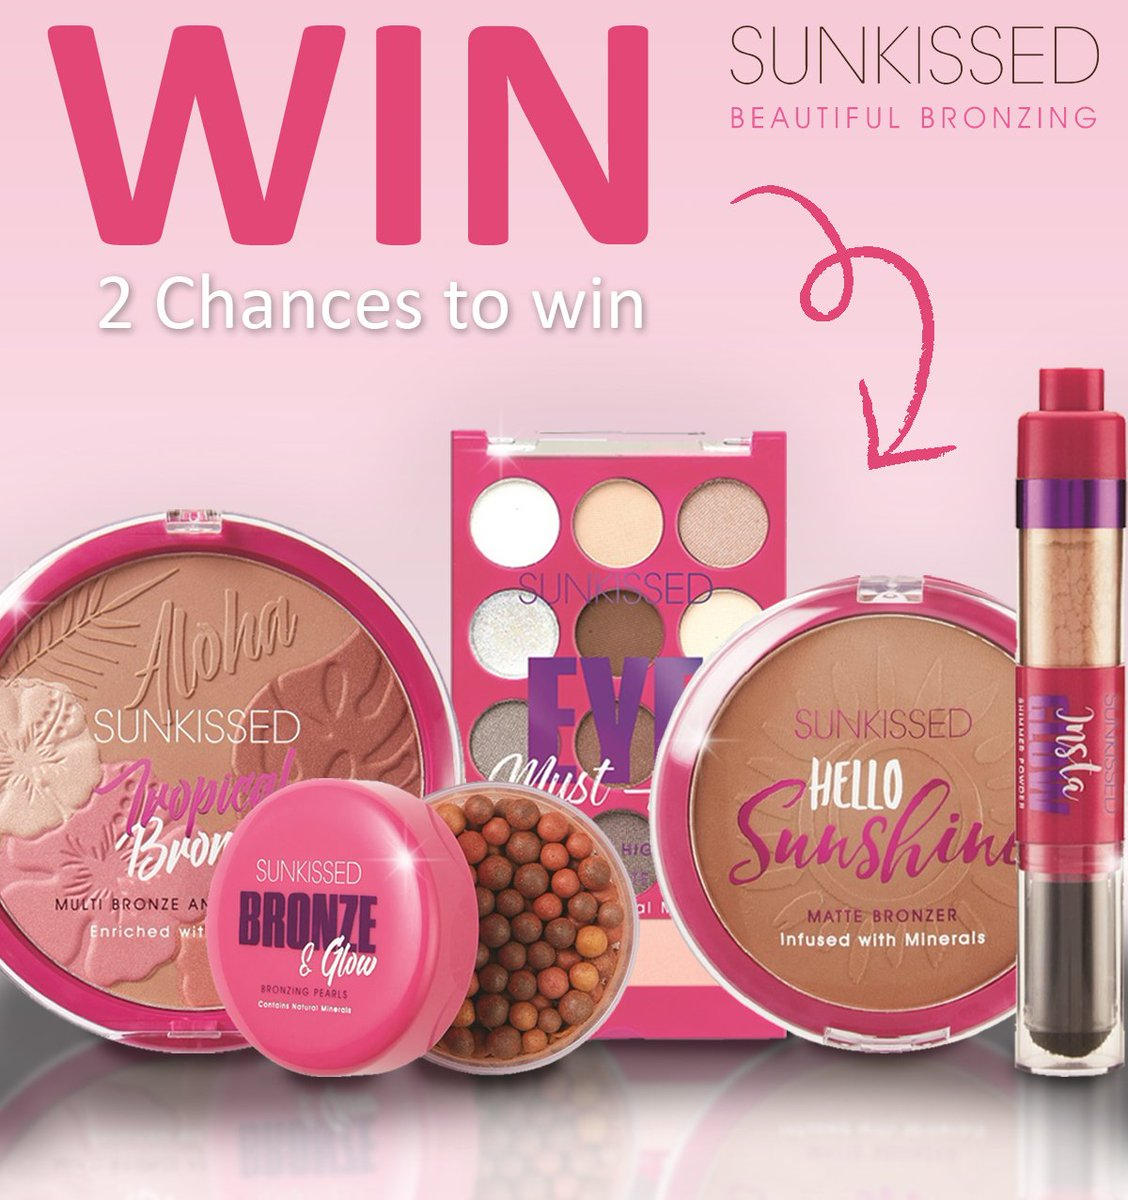 #GIVEAWAY time!  There is 2 chances to #win this beauty bundle! To enter all you have to do is FOLLOW our page RETWEET this and TAG a friend!  Good Luck! END DATE: 08/05/2019 T&amp;C&#39;s:  http:// htl.li/MD7W30of4Na  &nbsp;   #Competition #PrizeDraw <br>http://pic.twitter.com/zgRoZQcuOi